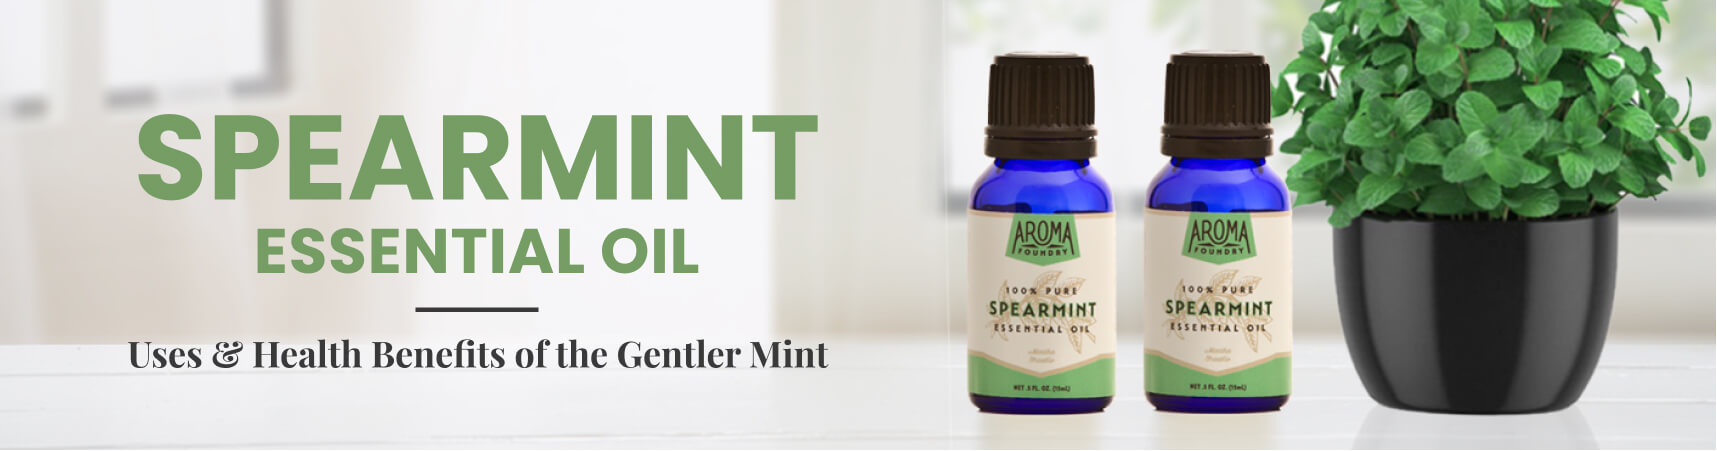 Spearmint Essential Oil: Uses & Health Benefits of the Gentler Mint